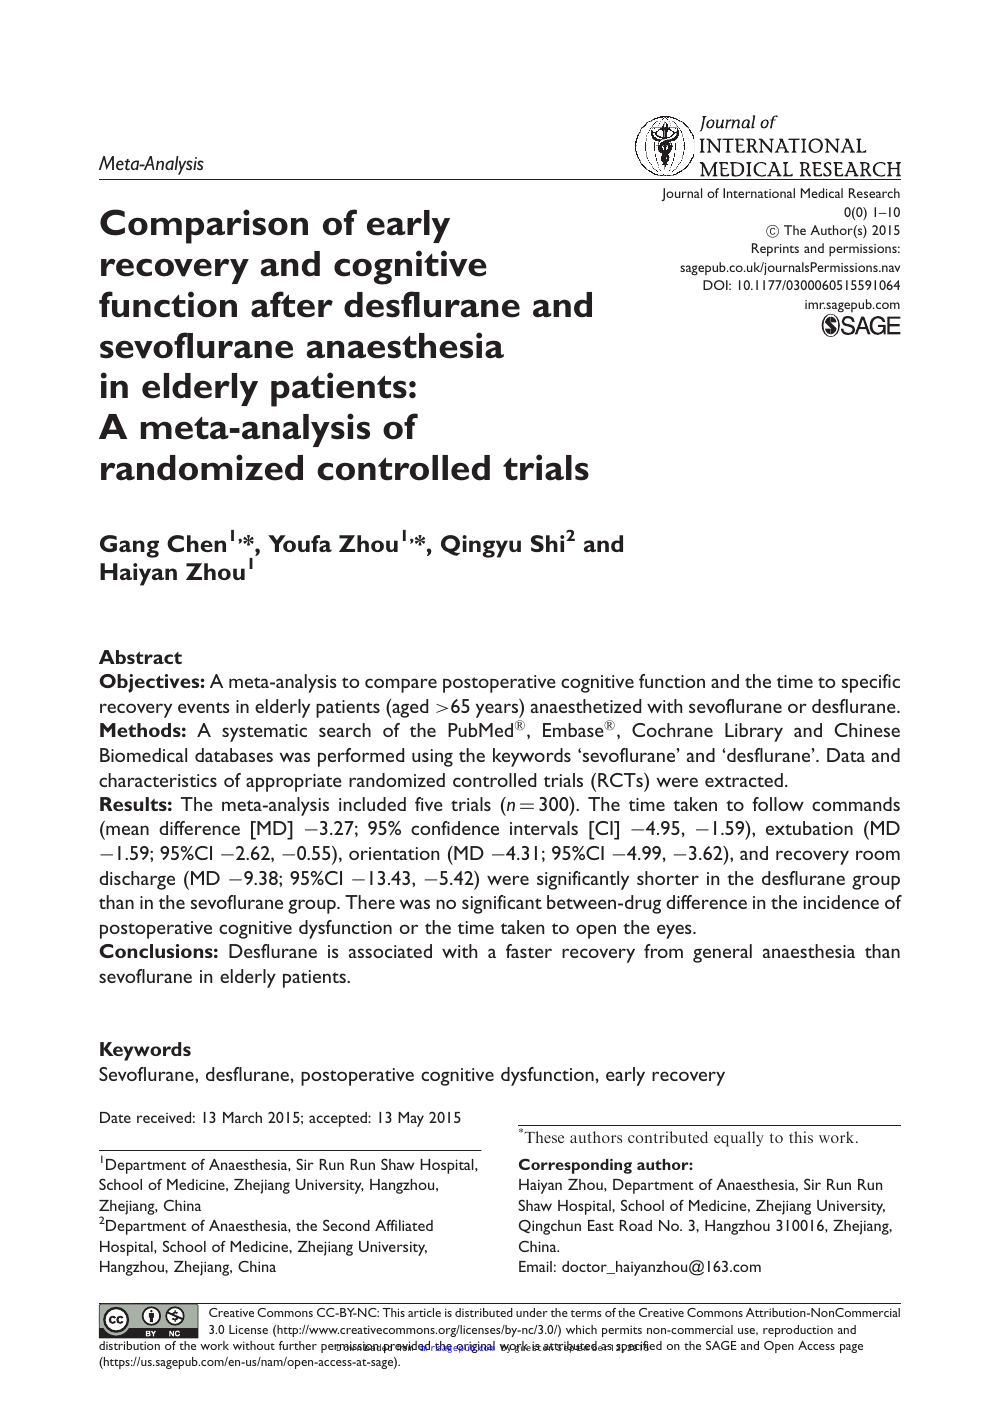 Comparison of early recovery and cognitive function after desflurane